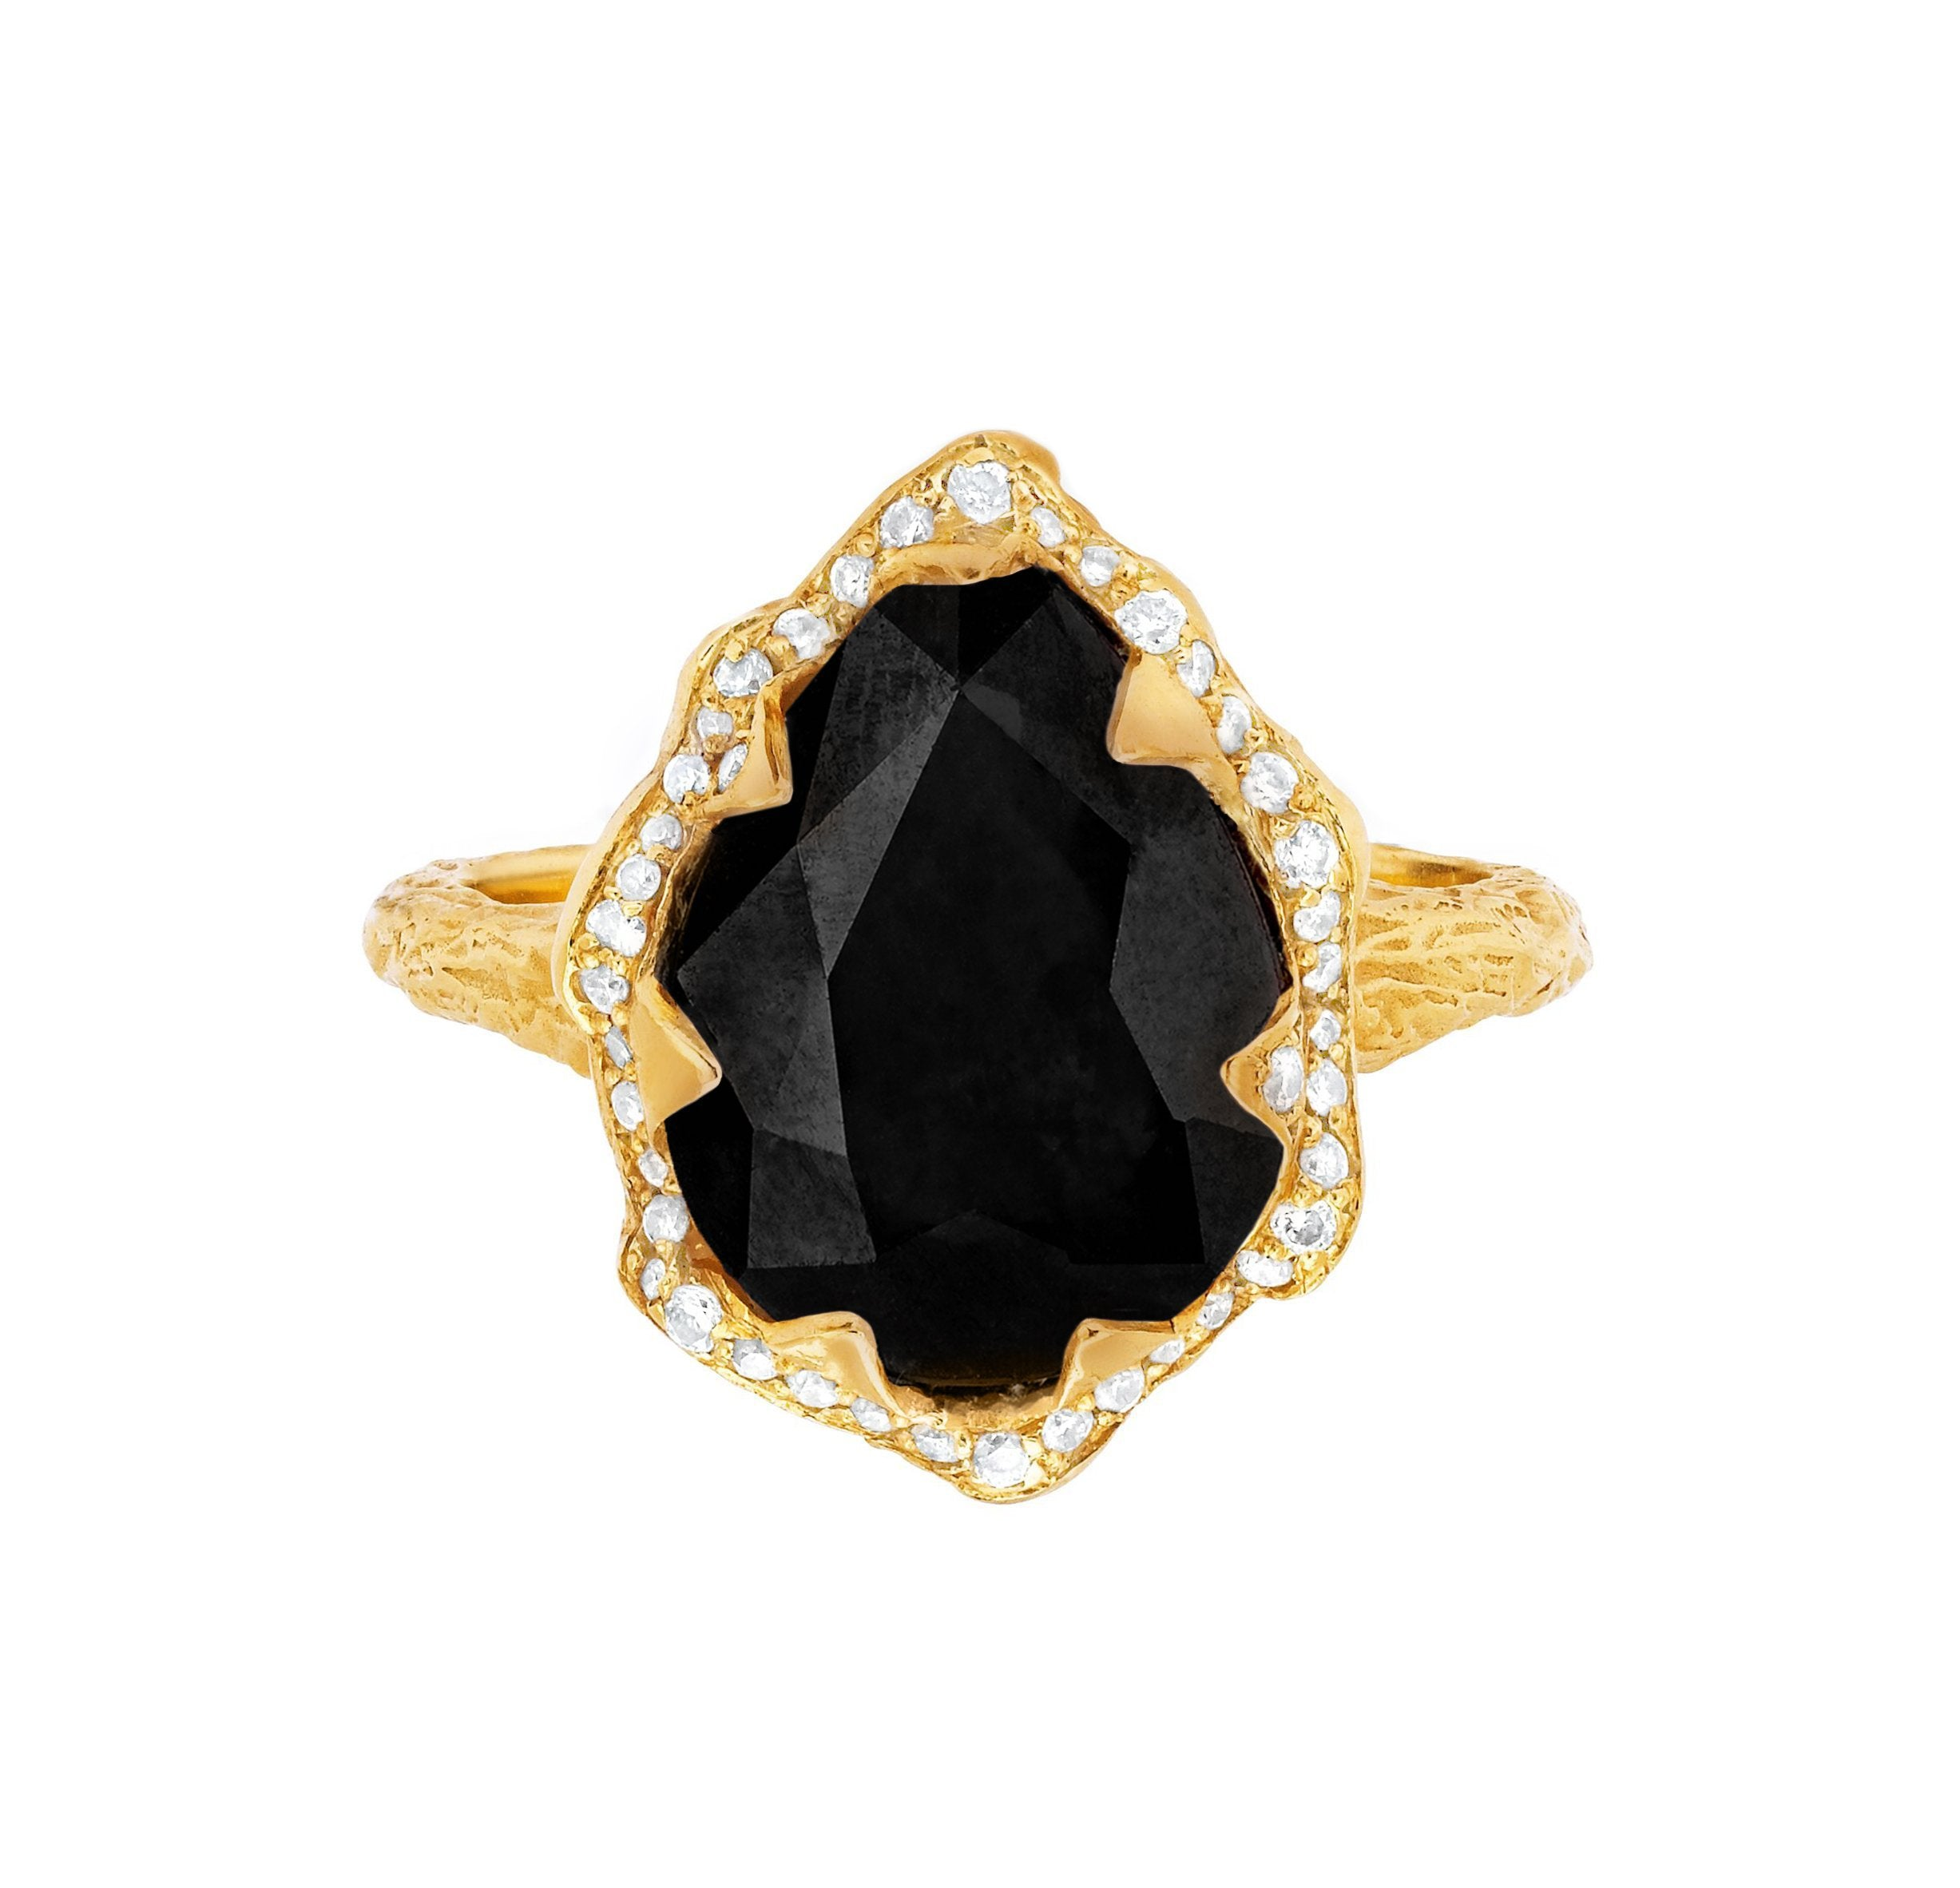 Queen Water Drop Onyx Ring with Full Pavé Diamond Halo